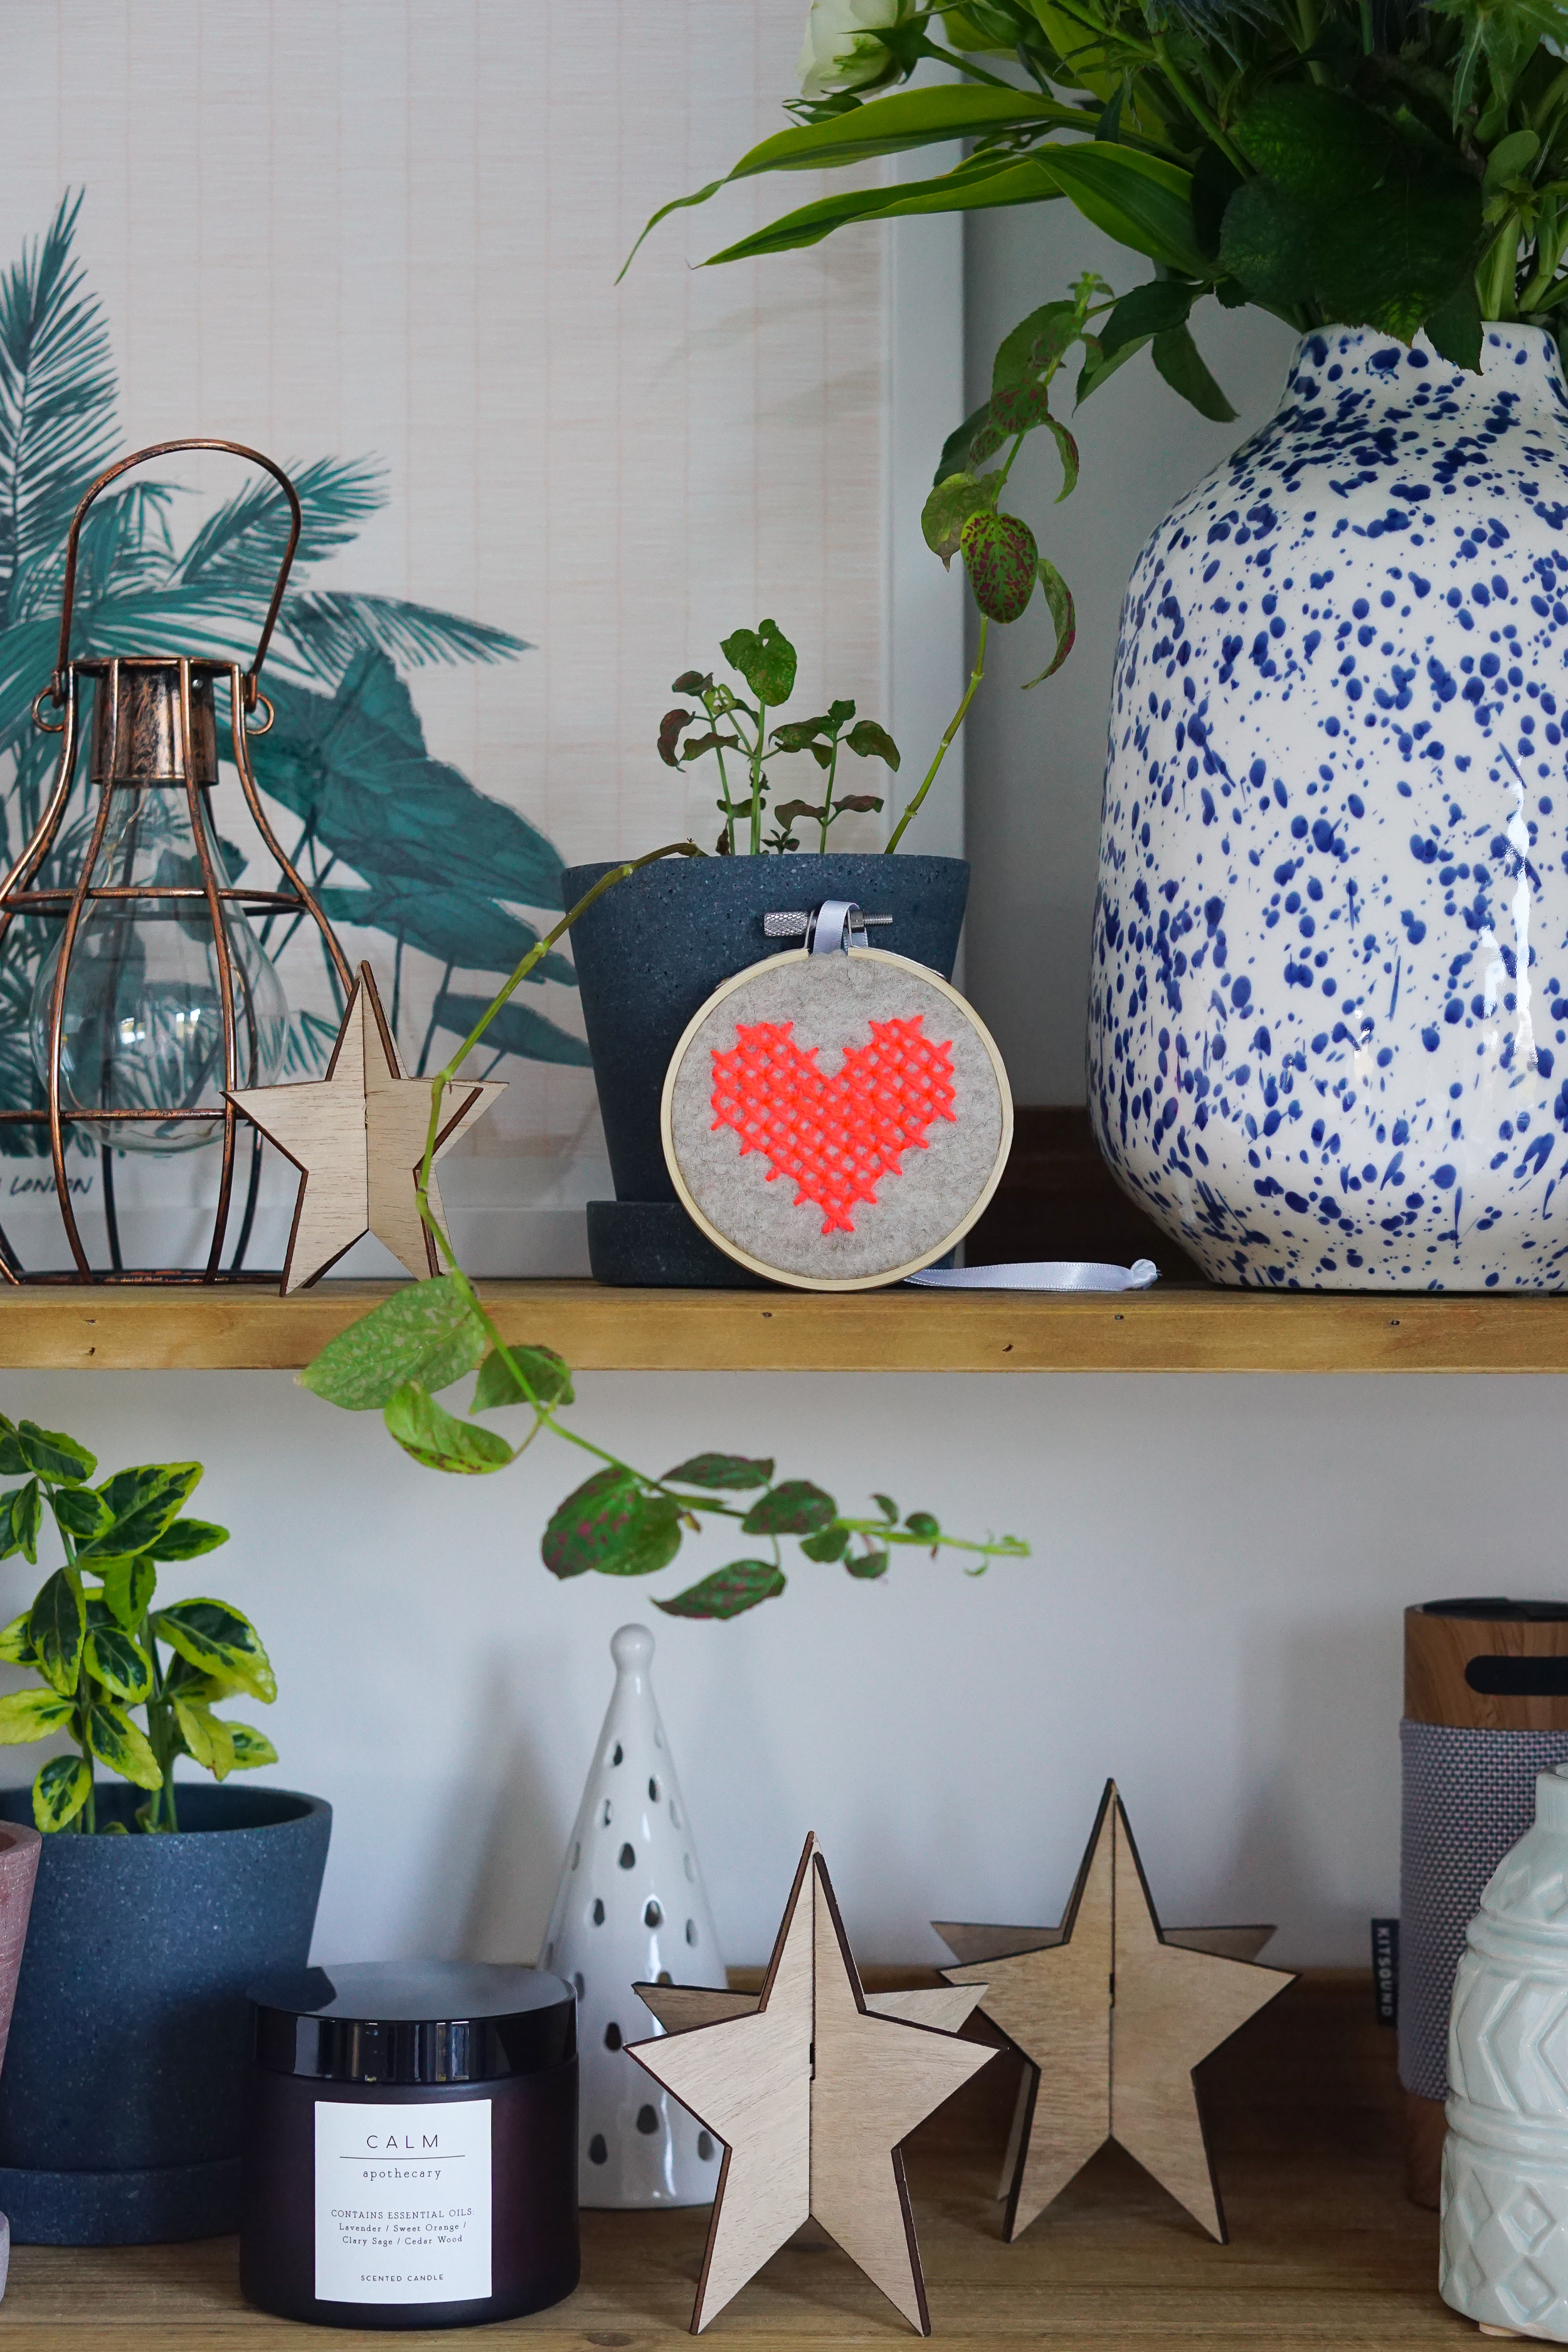 My Favourite Finds: Sweet Hearts from Cotton Clara